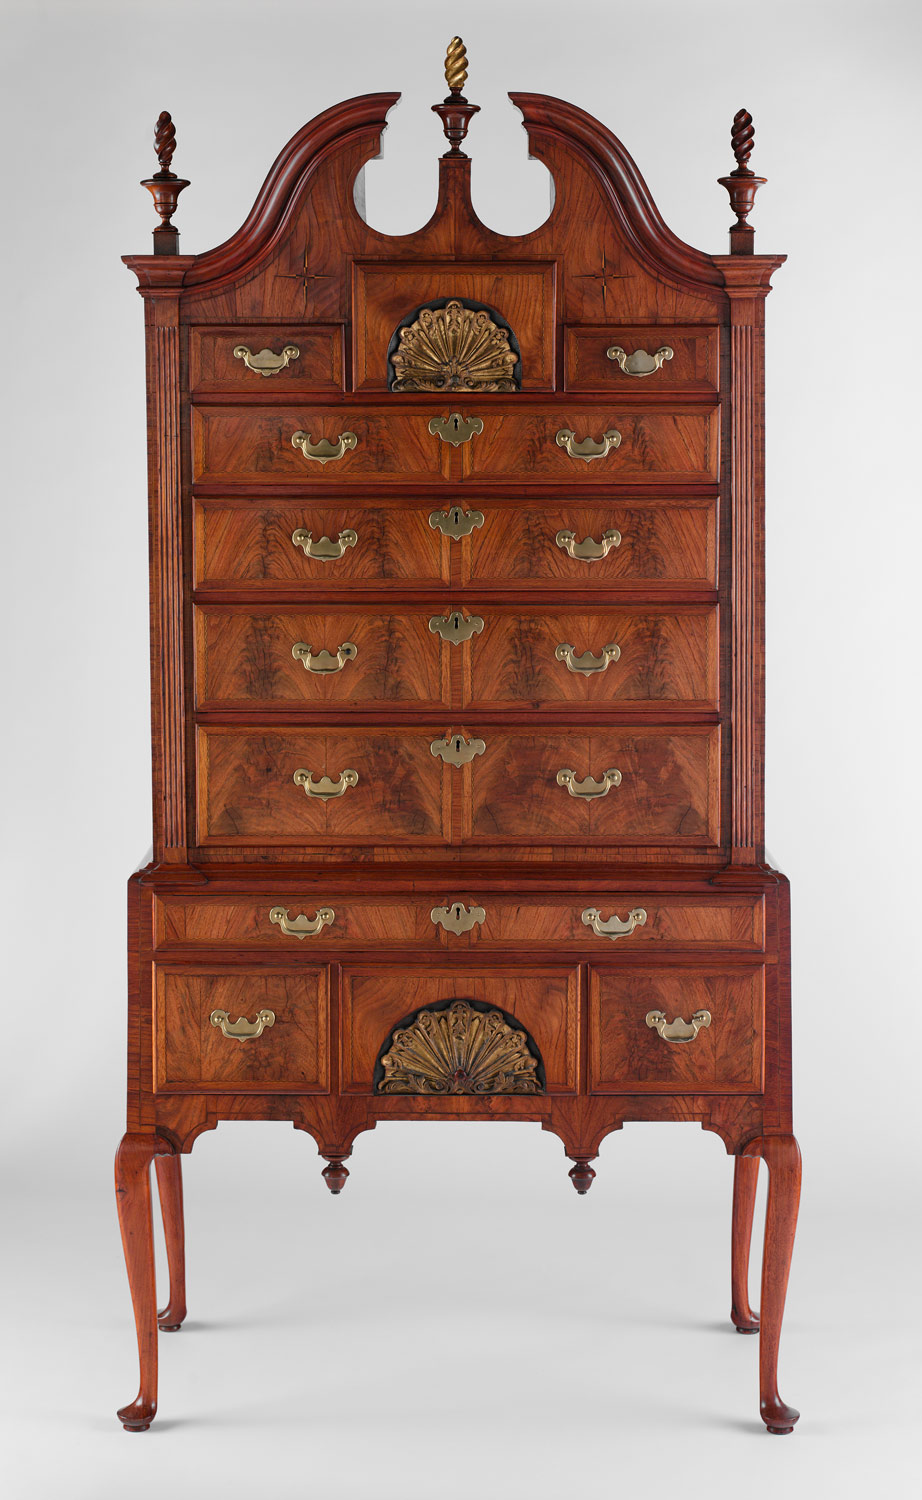 Queen Anne Chair History chest of drawer...